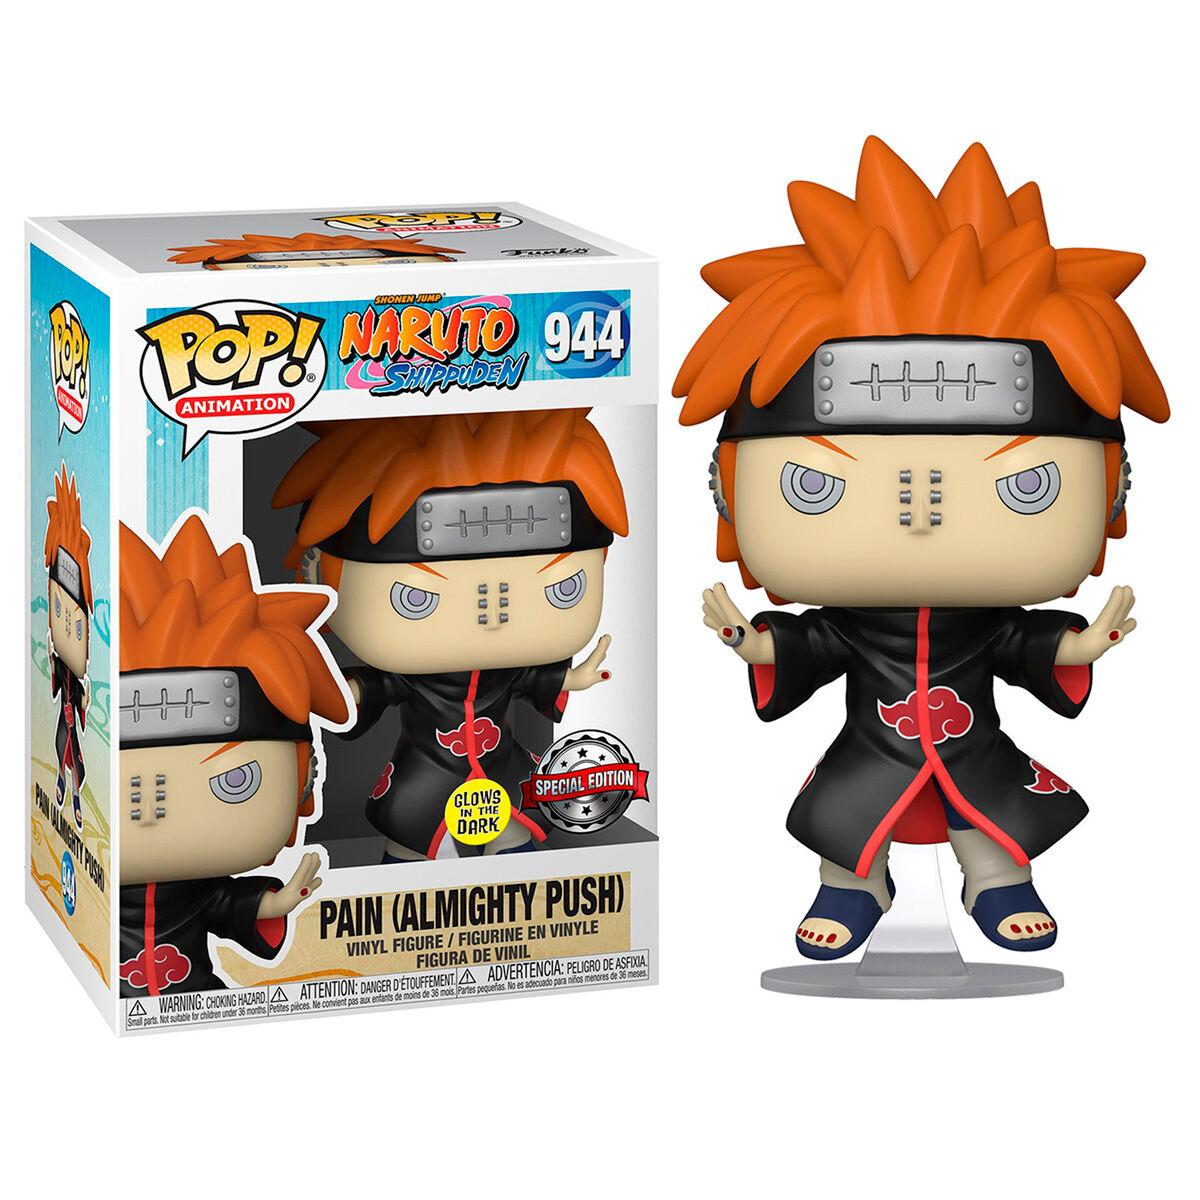 Figurine pop naruto pain almighty exclusive